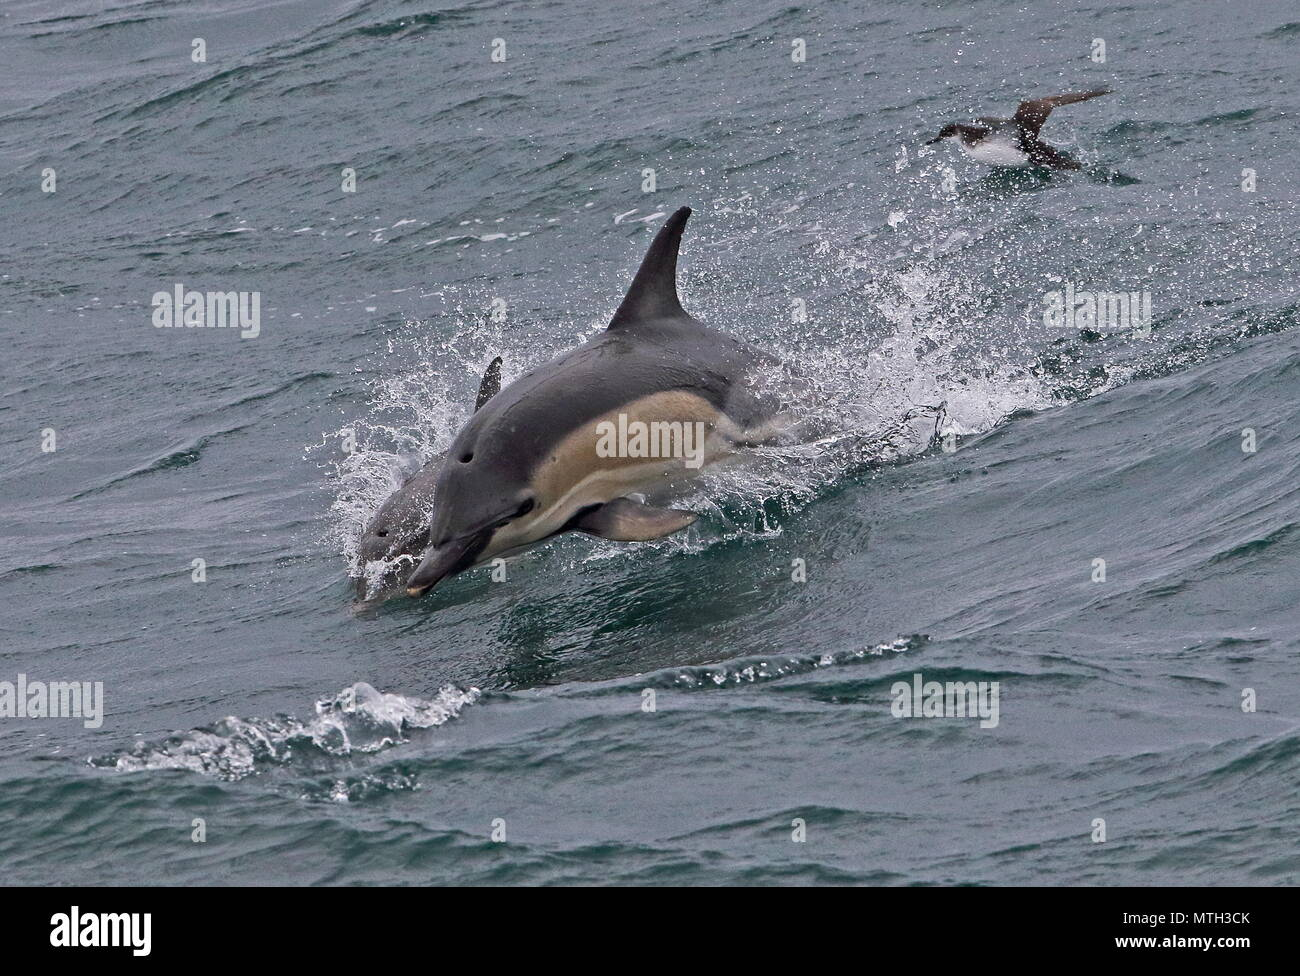 Short-beaked Common Dolphin (Delphinus delphis delphis) adult jumping out of water  Bay of Biscay, Atlantic Ocean        May - Stock Image